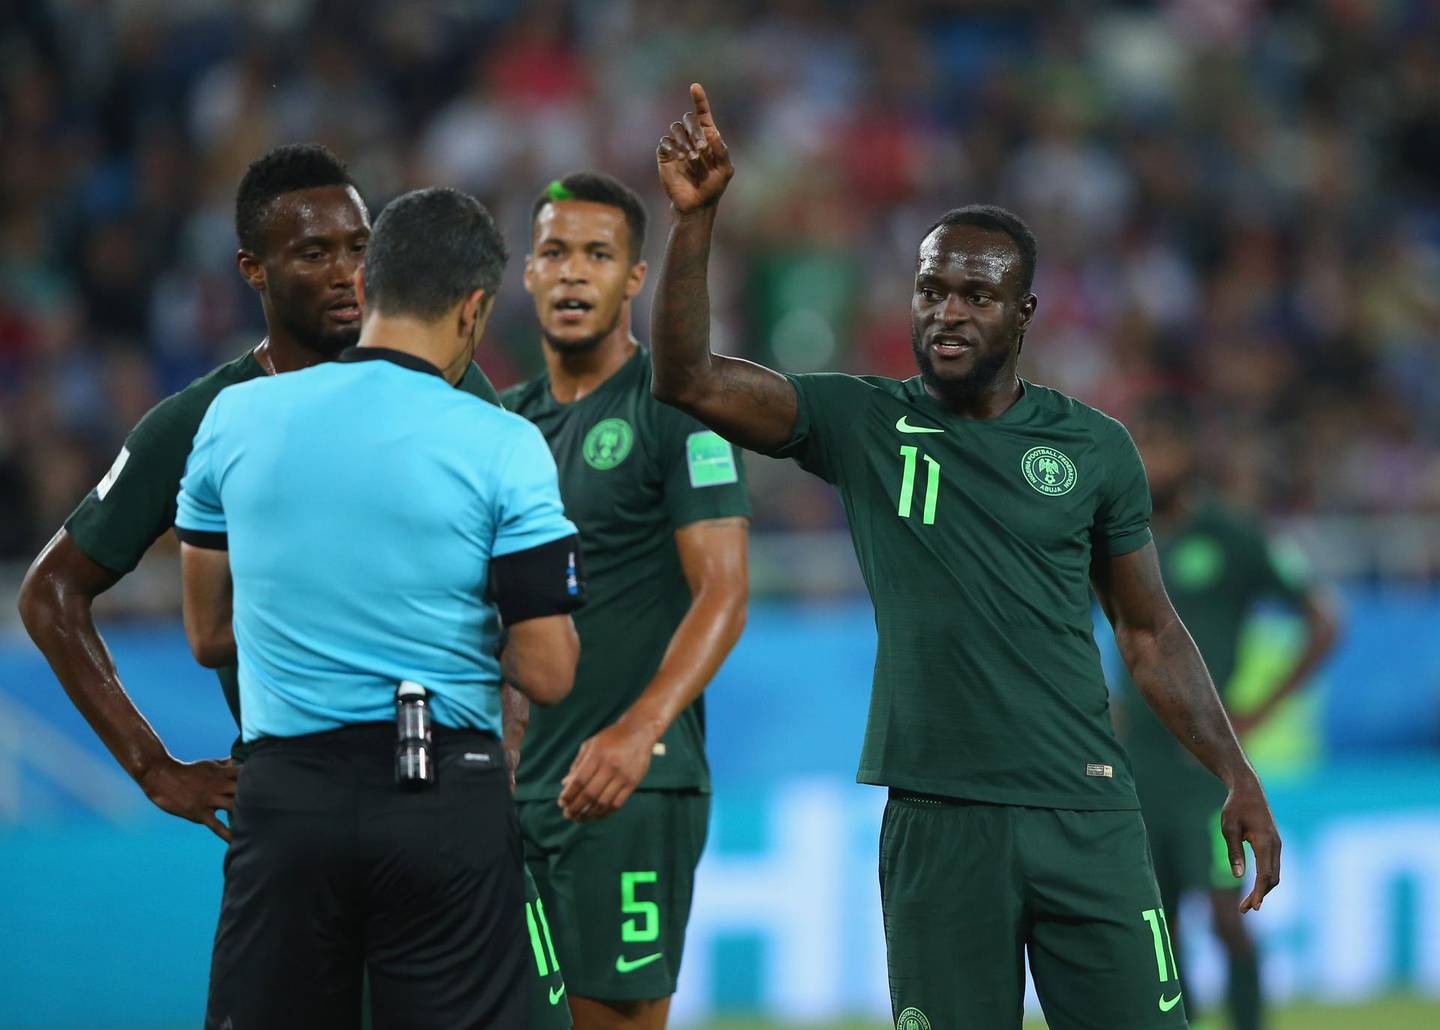 KALININGRAD, RUSSIA - JUNE 16:  Victor Moses of Nigeria argues with referee Sandro Ricci as he awards a penalty to Croatia during the 2018 FIFA World Cup Russia group D match between Croatia and Nigeria at Kaliningrad Stadium on June 16, 2018 in Kaliningrad, Russia.  (Photo by Alex Livesey/Getty Images)